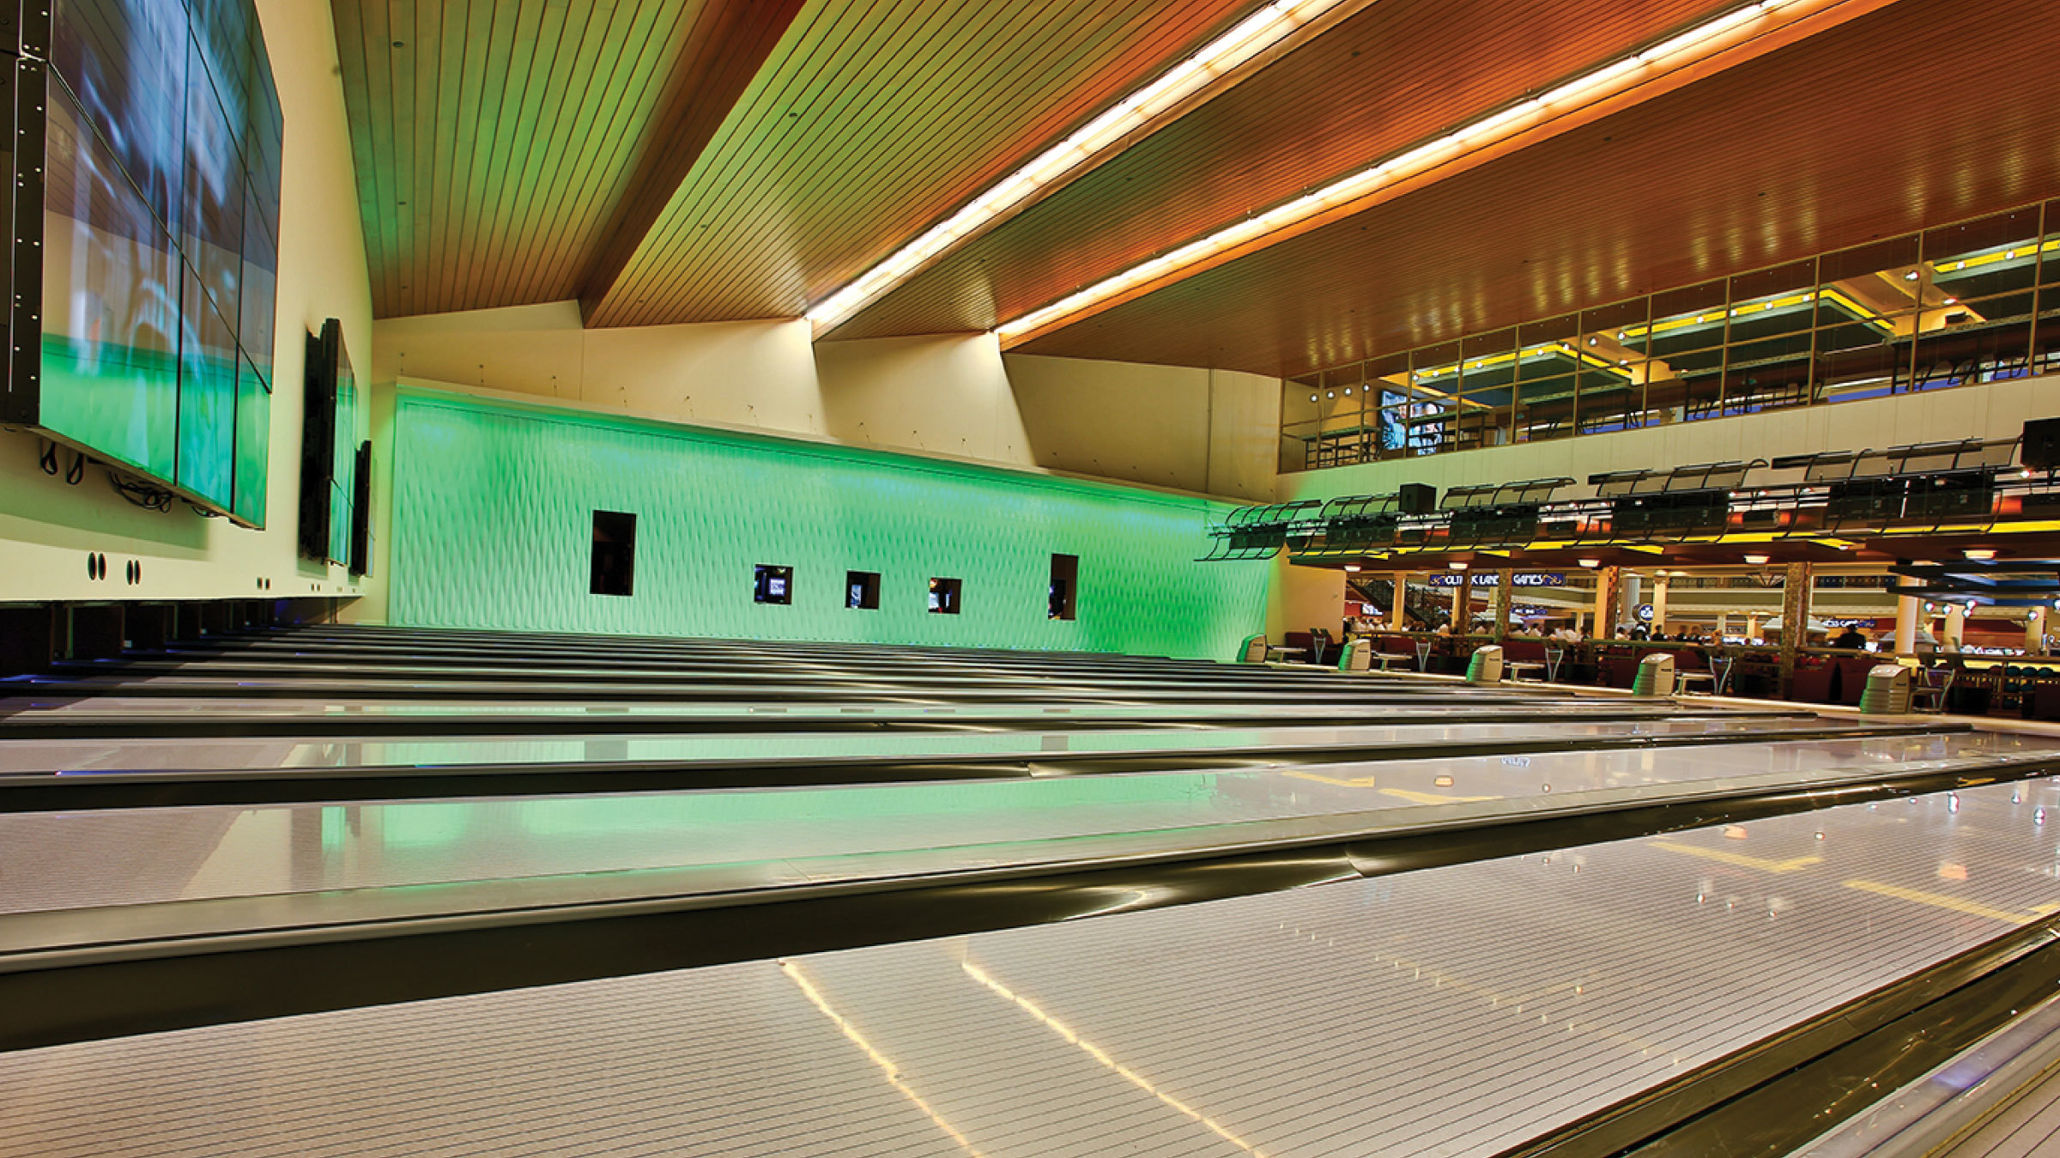 olympic_lanes__games_richmond_tx_16x9_05_cc6833e5b379cf061e625296f23dfd1b